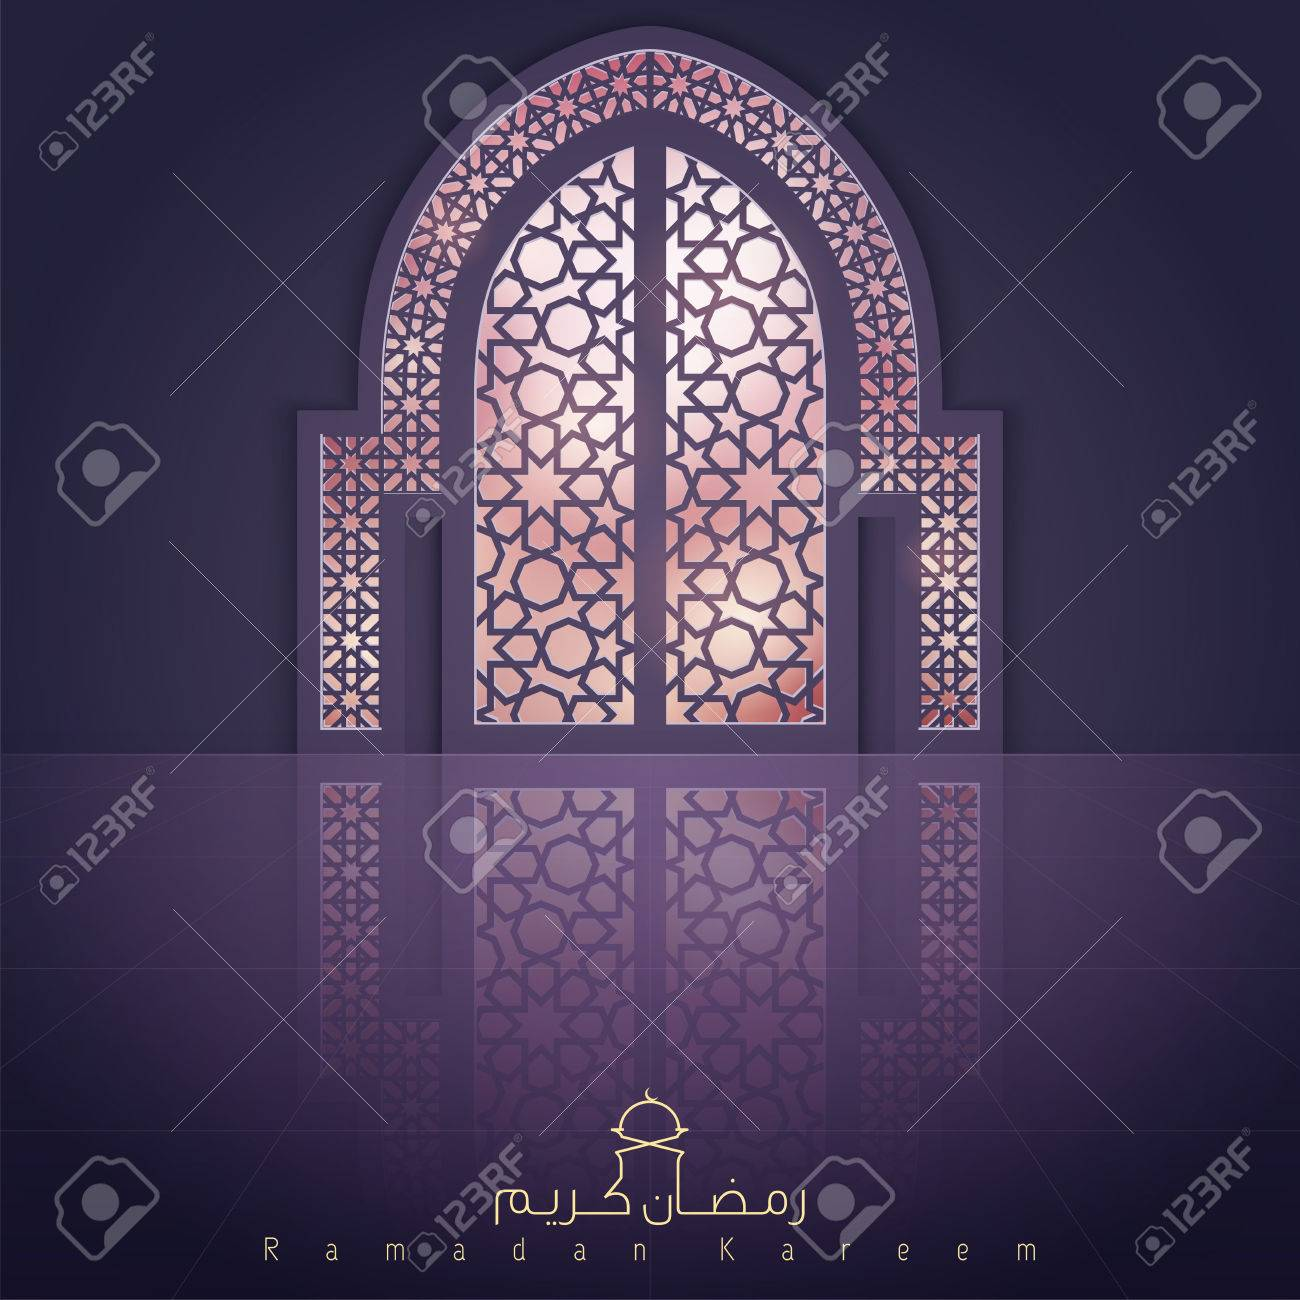 Awesome Ramadan Kareem Islamic Design Mosque Door For Greeting Background Stock  Vector   57005492